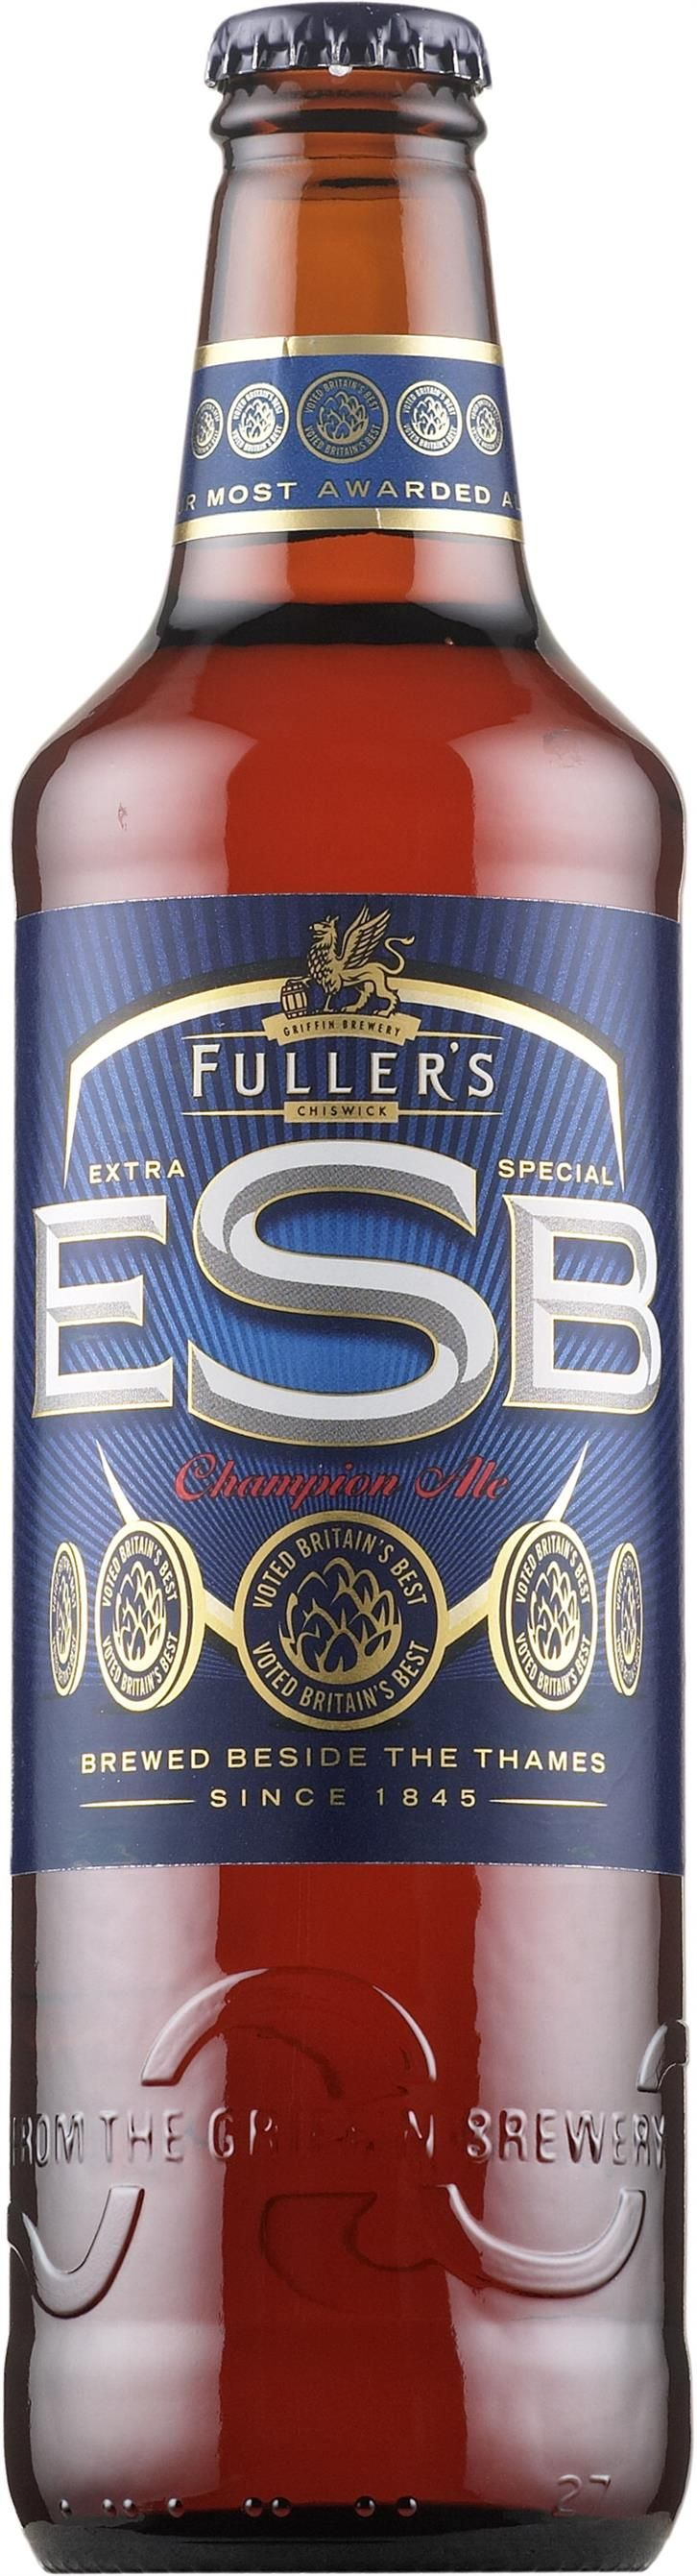 ESB - Fuller's Extra Special Bitter. 8/10 pts